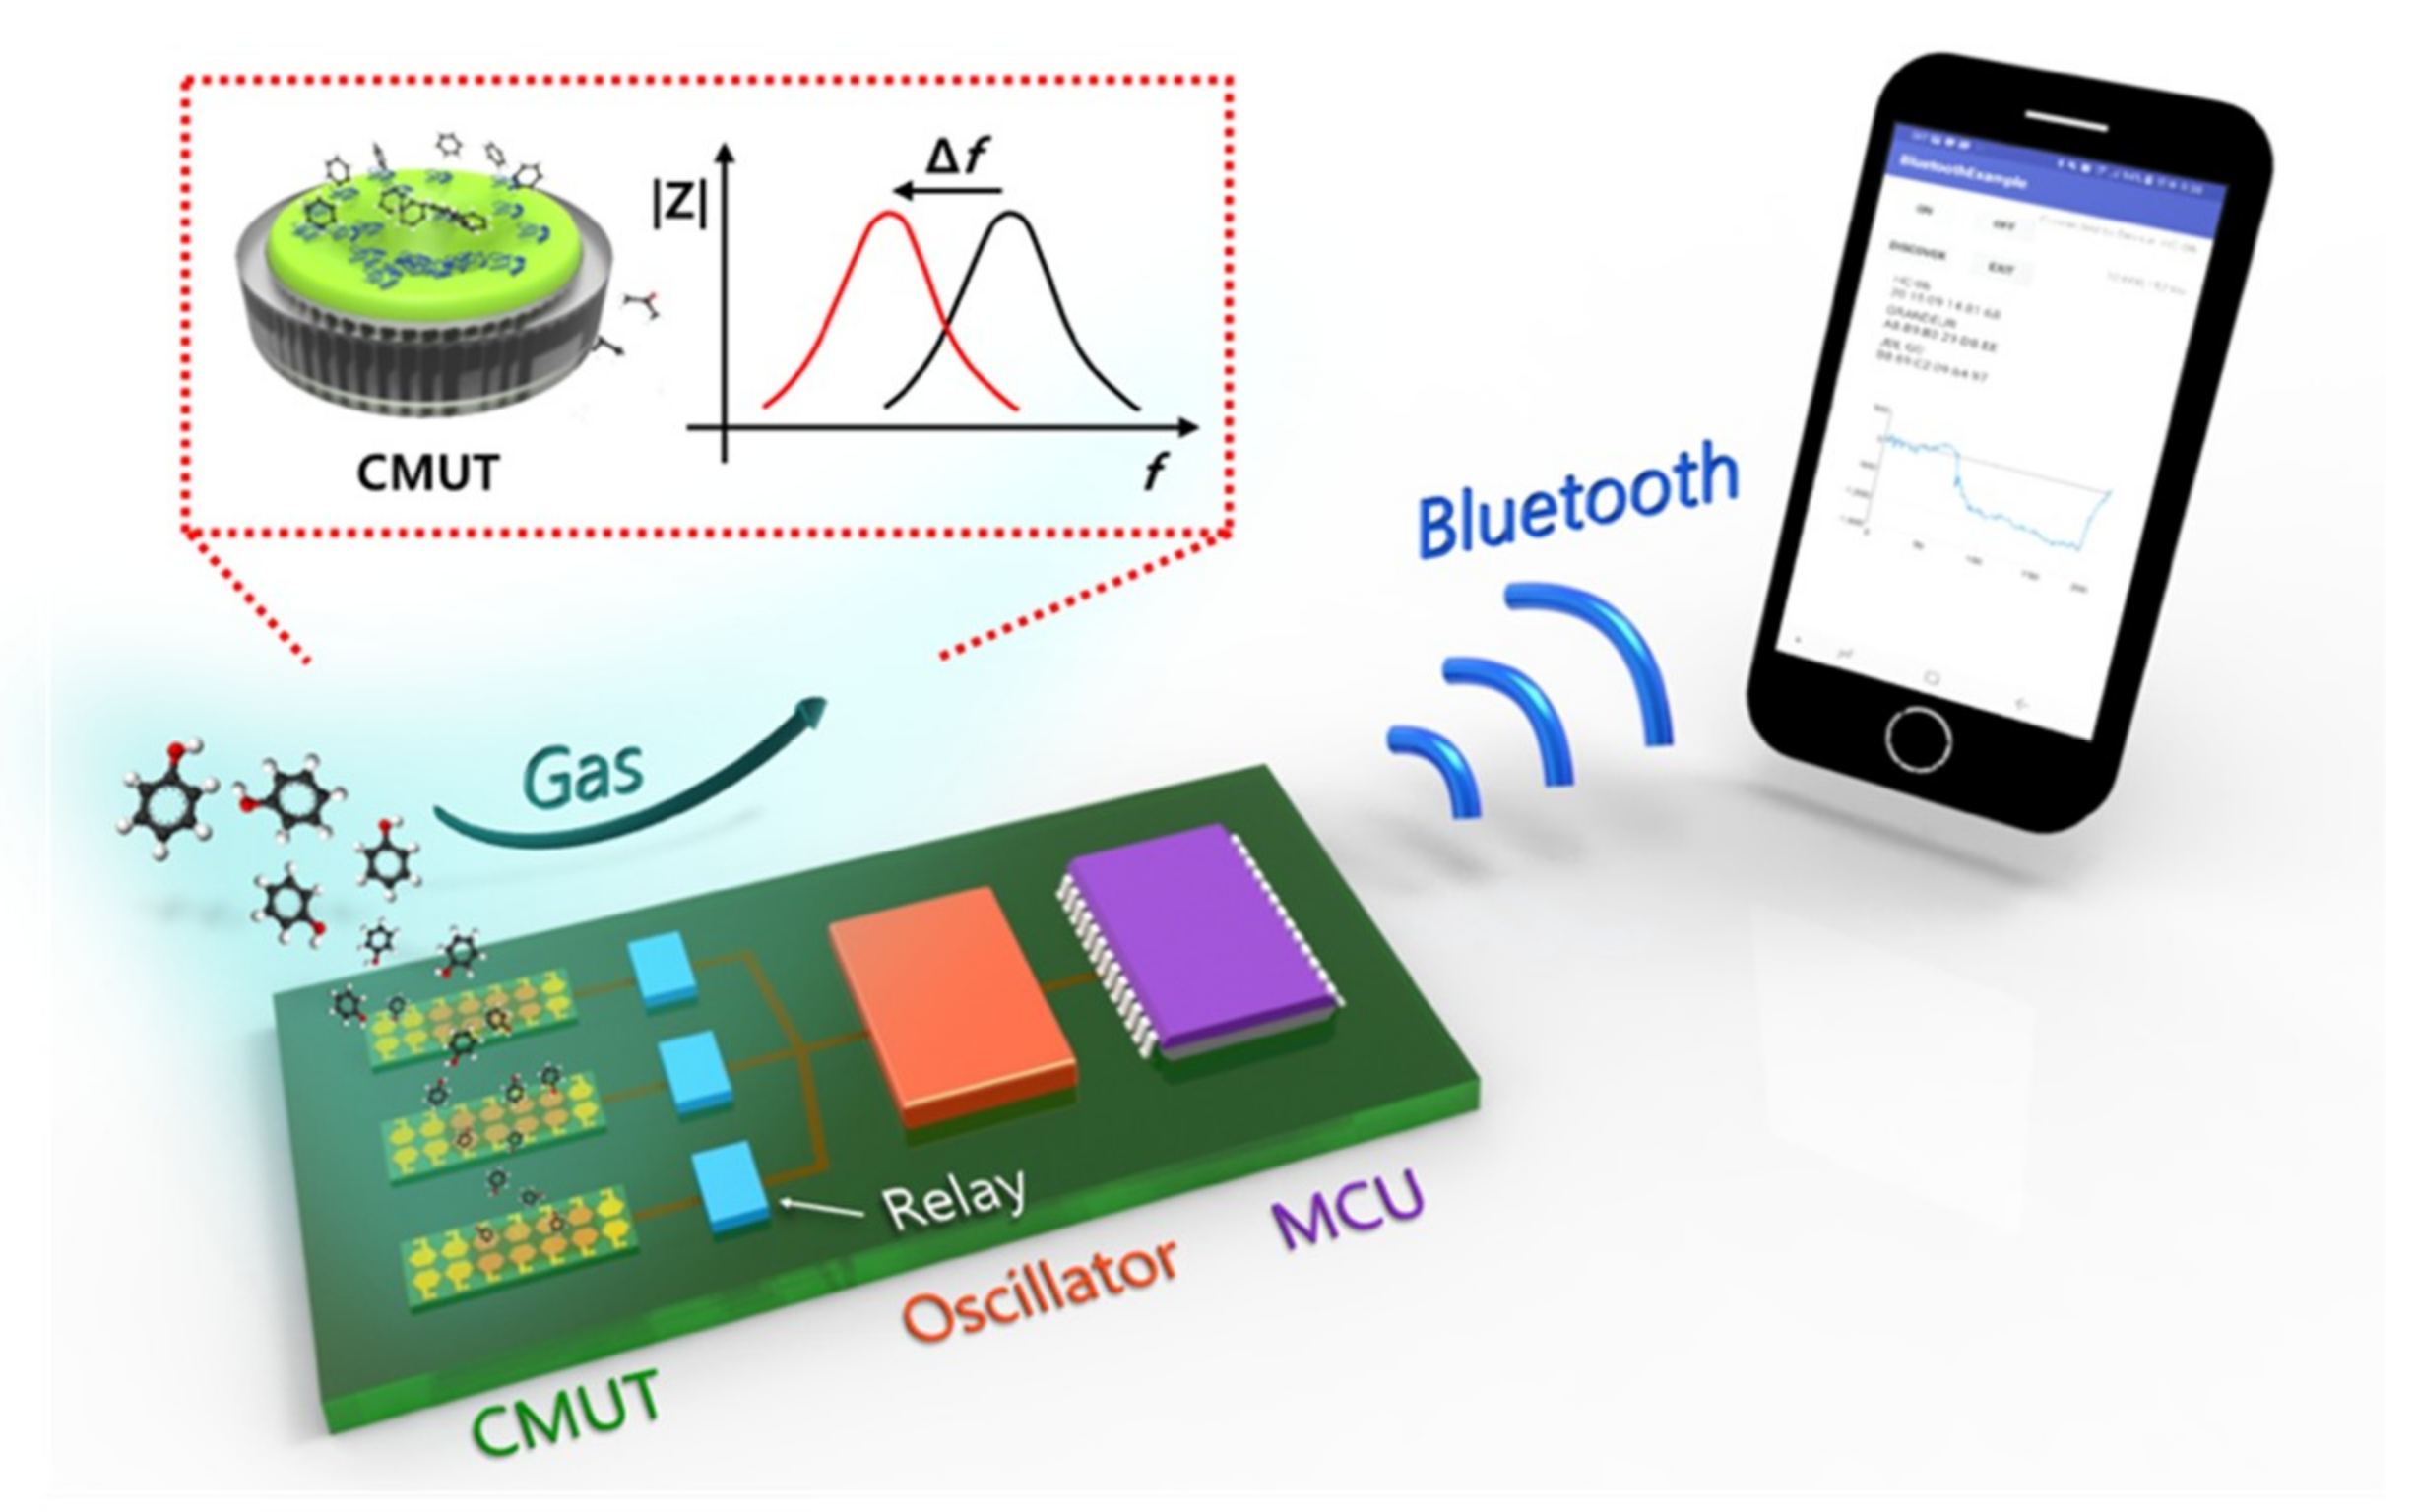 Sensors | Free Full-Text | A Capacitive Micromachined Ultrasonic Transducer-Based Resonant Sensor Array for Portable Volatile Organic Compound Detection with Wireless Systems | HTML